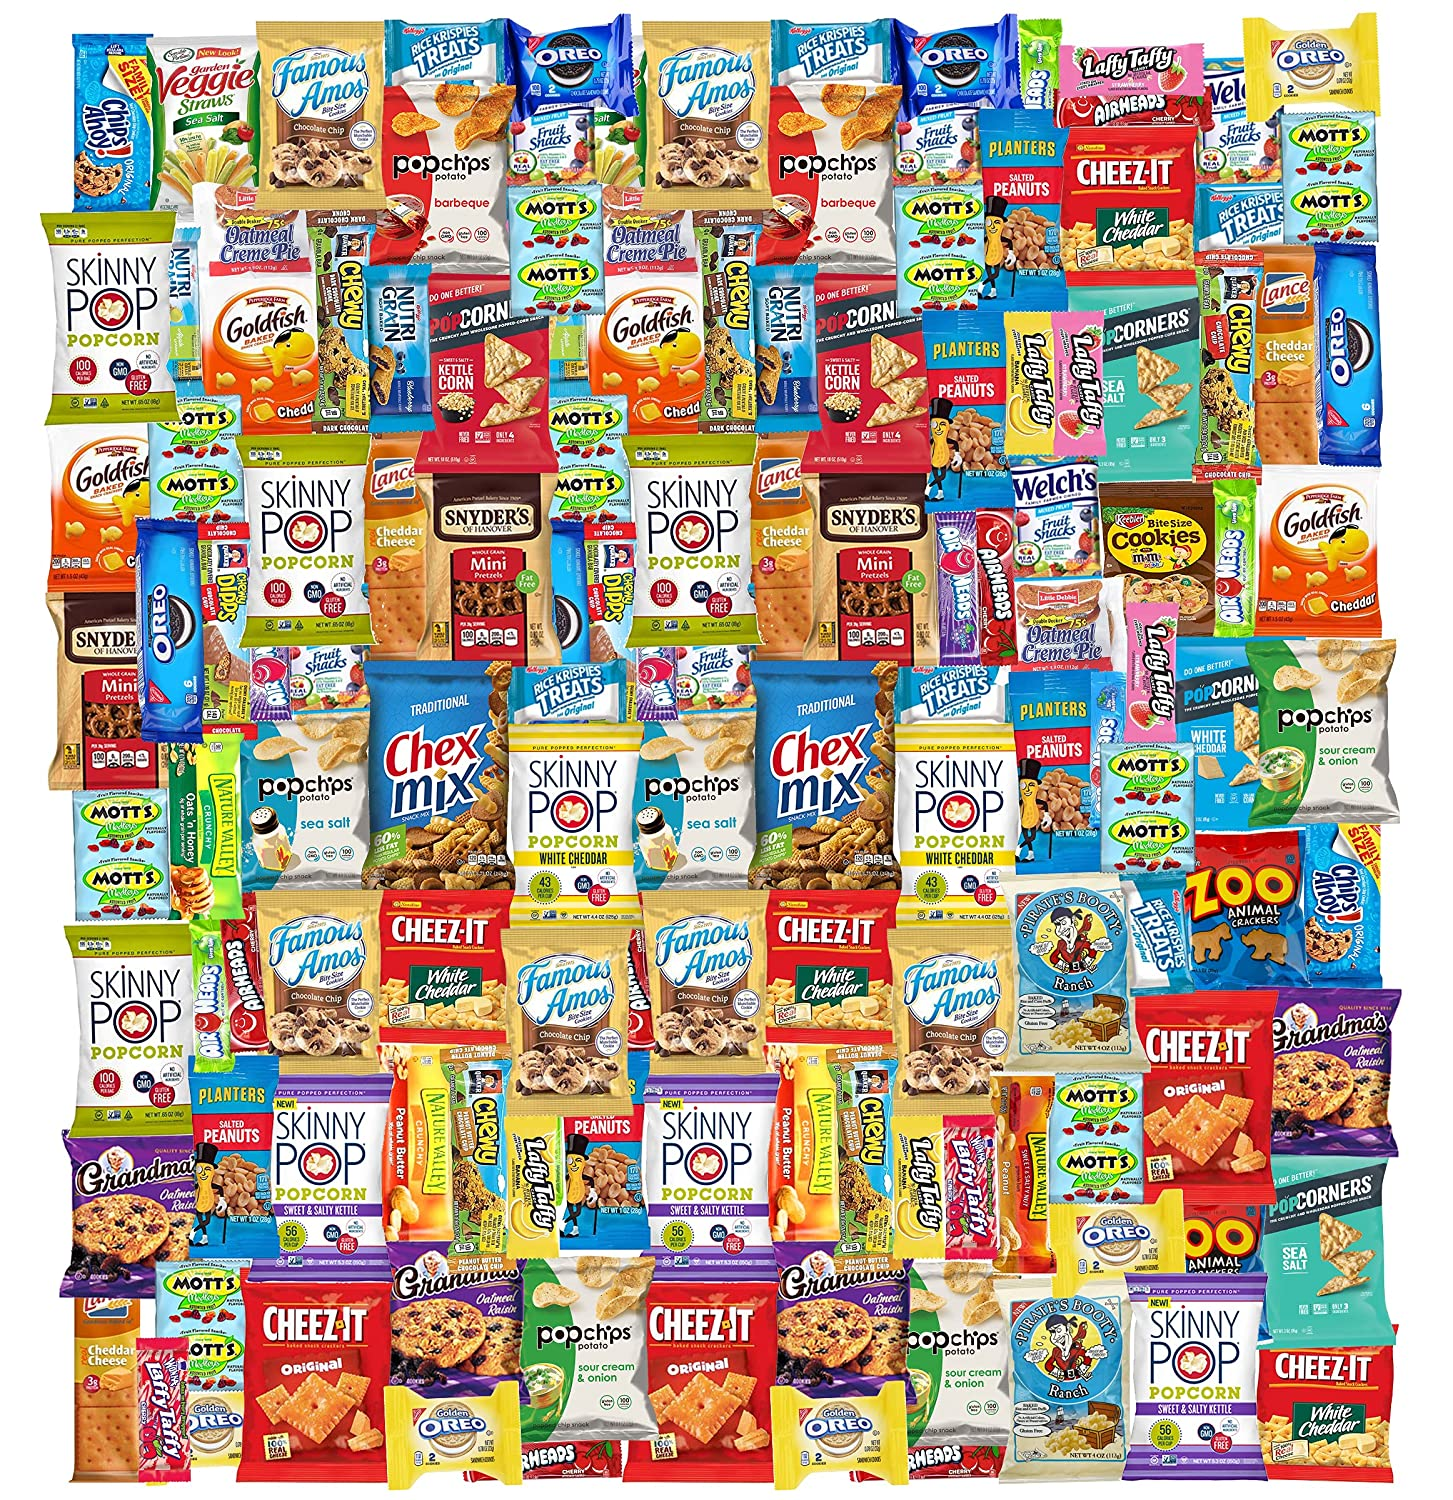 Care Package (150) Variety Snacks Gift Box Bulk Snacks - College Students, Military, Work or Home - Over 9 Pounds of Snacks! Snack Box